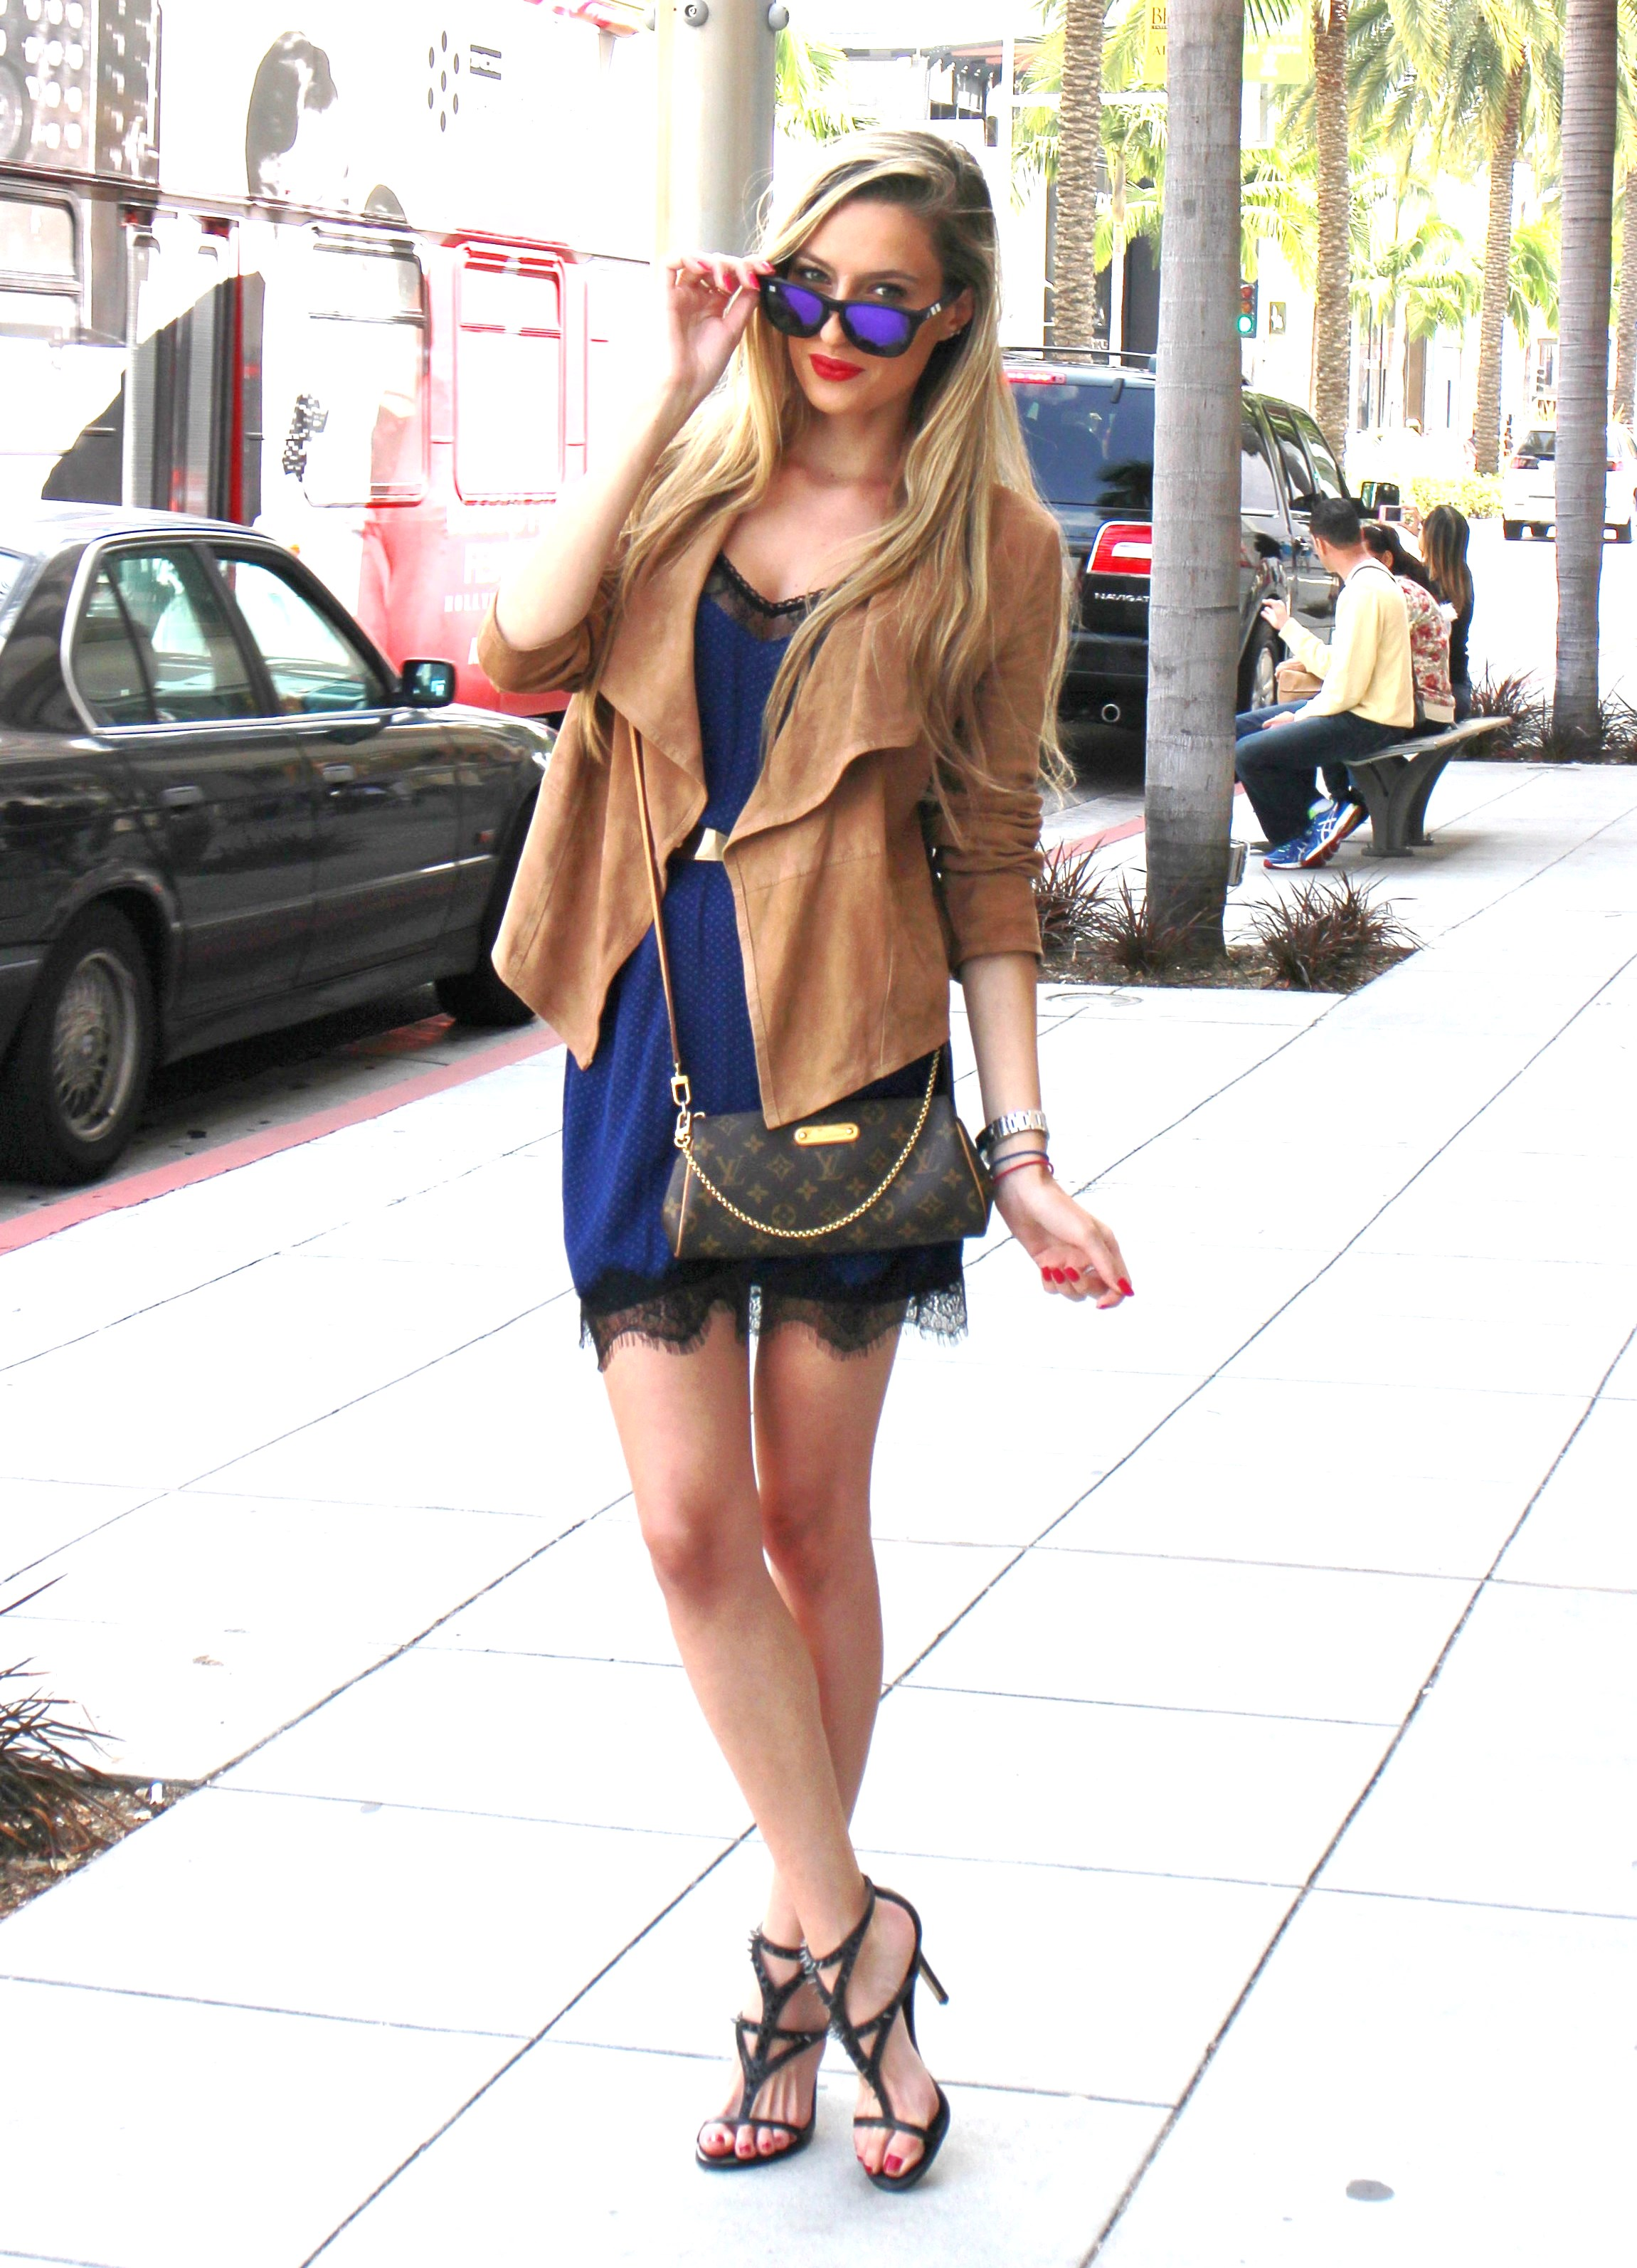 Rodeo_Drive_Los_Angeles_California_Shopping_Lara_Martin_Gilarranz_Bymyheels (5)